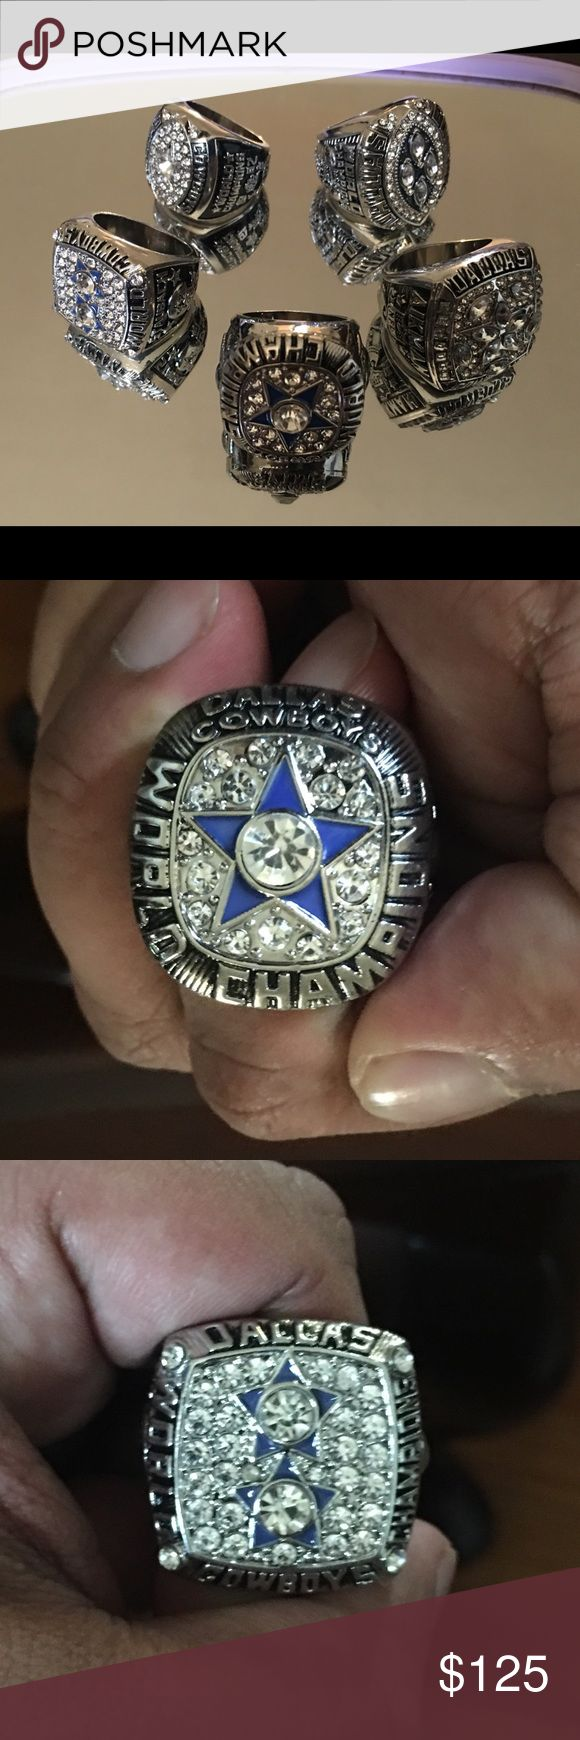 Five Dallas Cowboys super bowl ring set Dallas Cowboys Super Bowl championship rings 1971 with Staubuck as MVP. 1977 Super Bowl ring with Staubuck as MVP.  Back-to-back Super Bowl rings one with Aikman as MVP the 92 and 93 with Emmitt Smith as MVP and 95 with brown as MVP.  Sold as a set  Great for your man cave, or to showcase for your guests and rivals. Accessories Jewelry